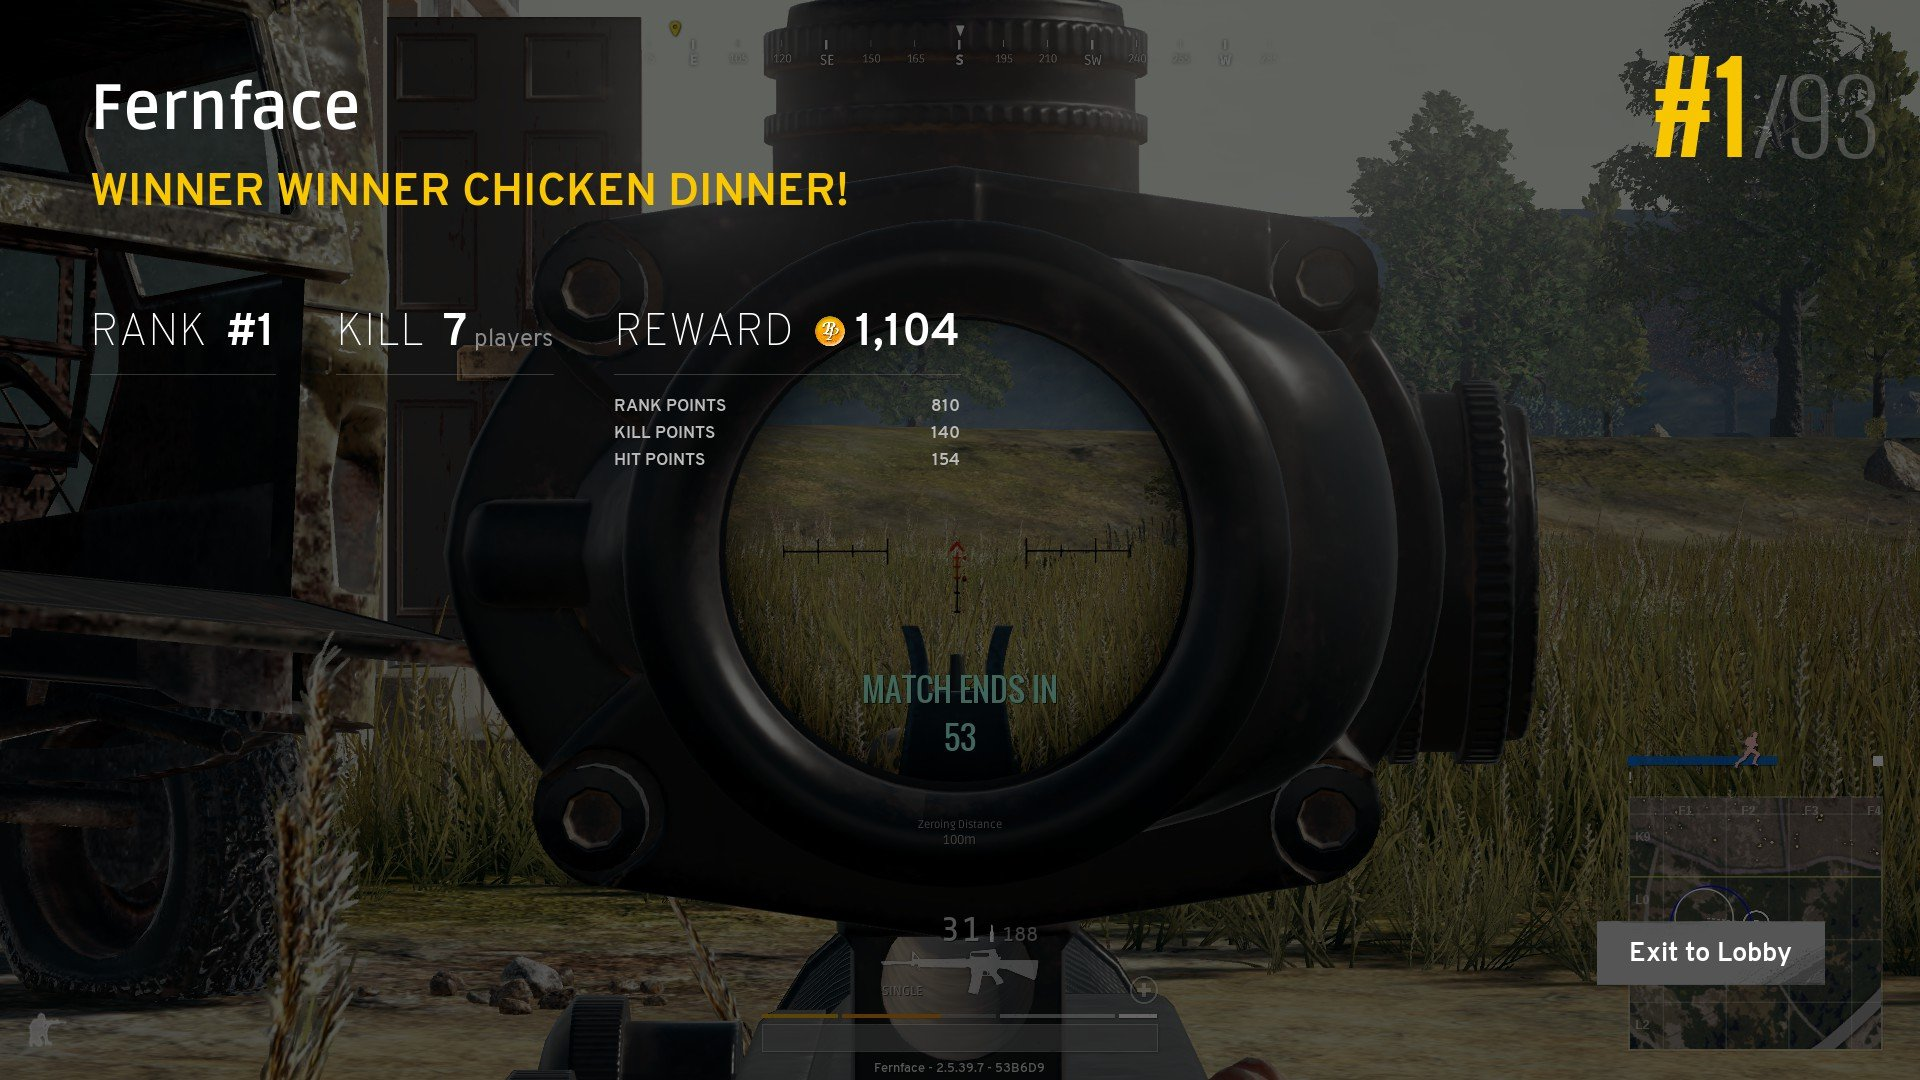 What we're all here for: That tasty chicken dinner.